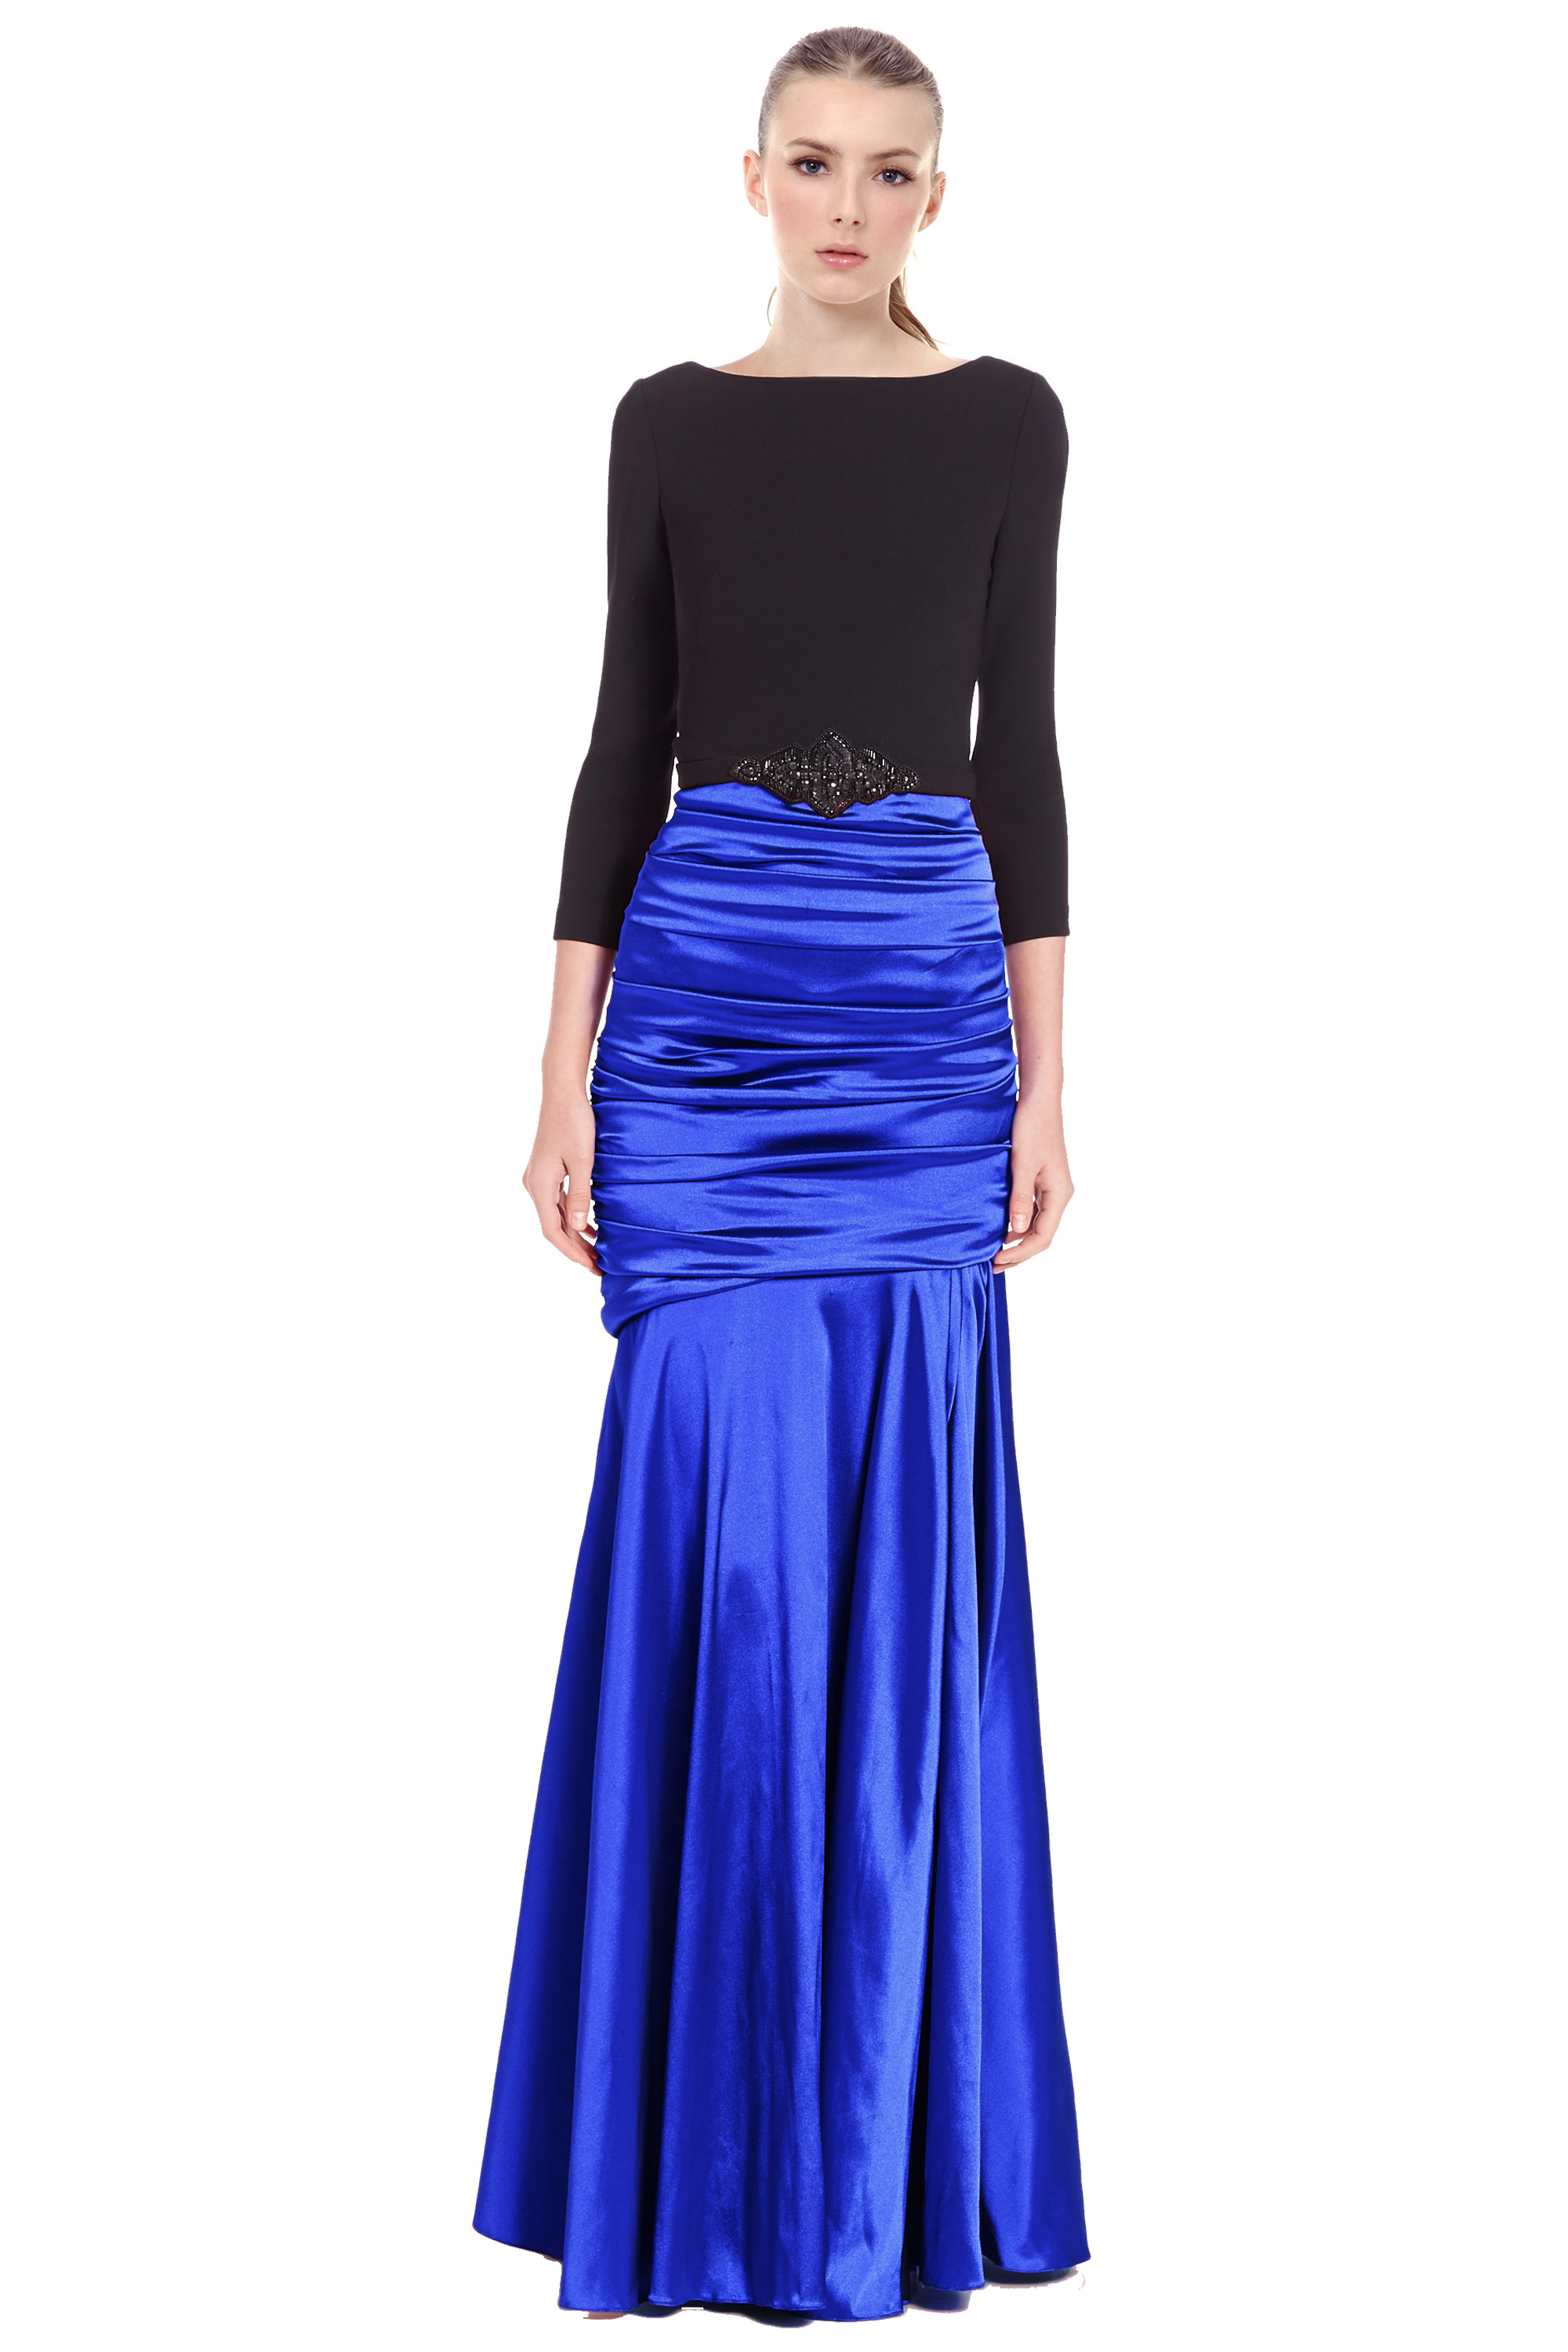 Theia Blue Ruched Embellished Waist 3/4 Sleeve Evening Gown Dress 6 ...